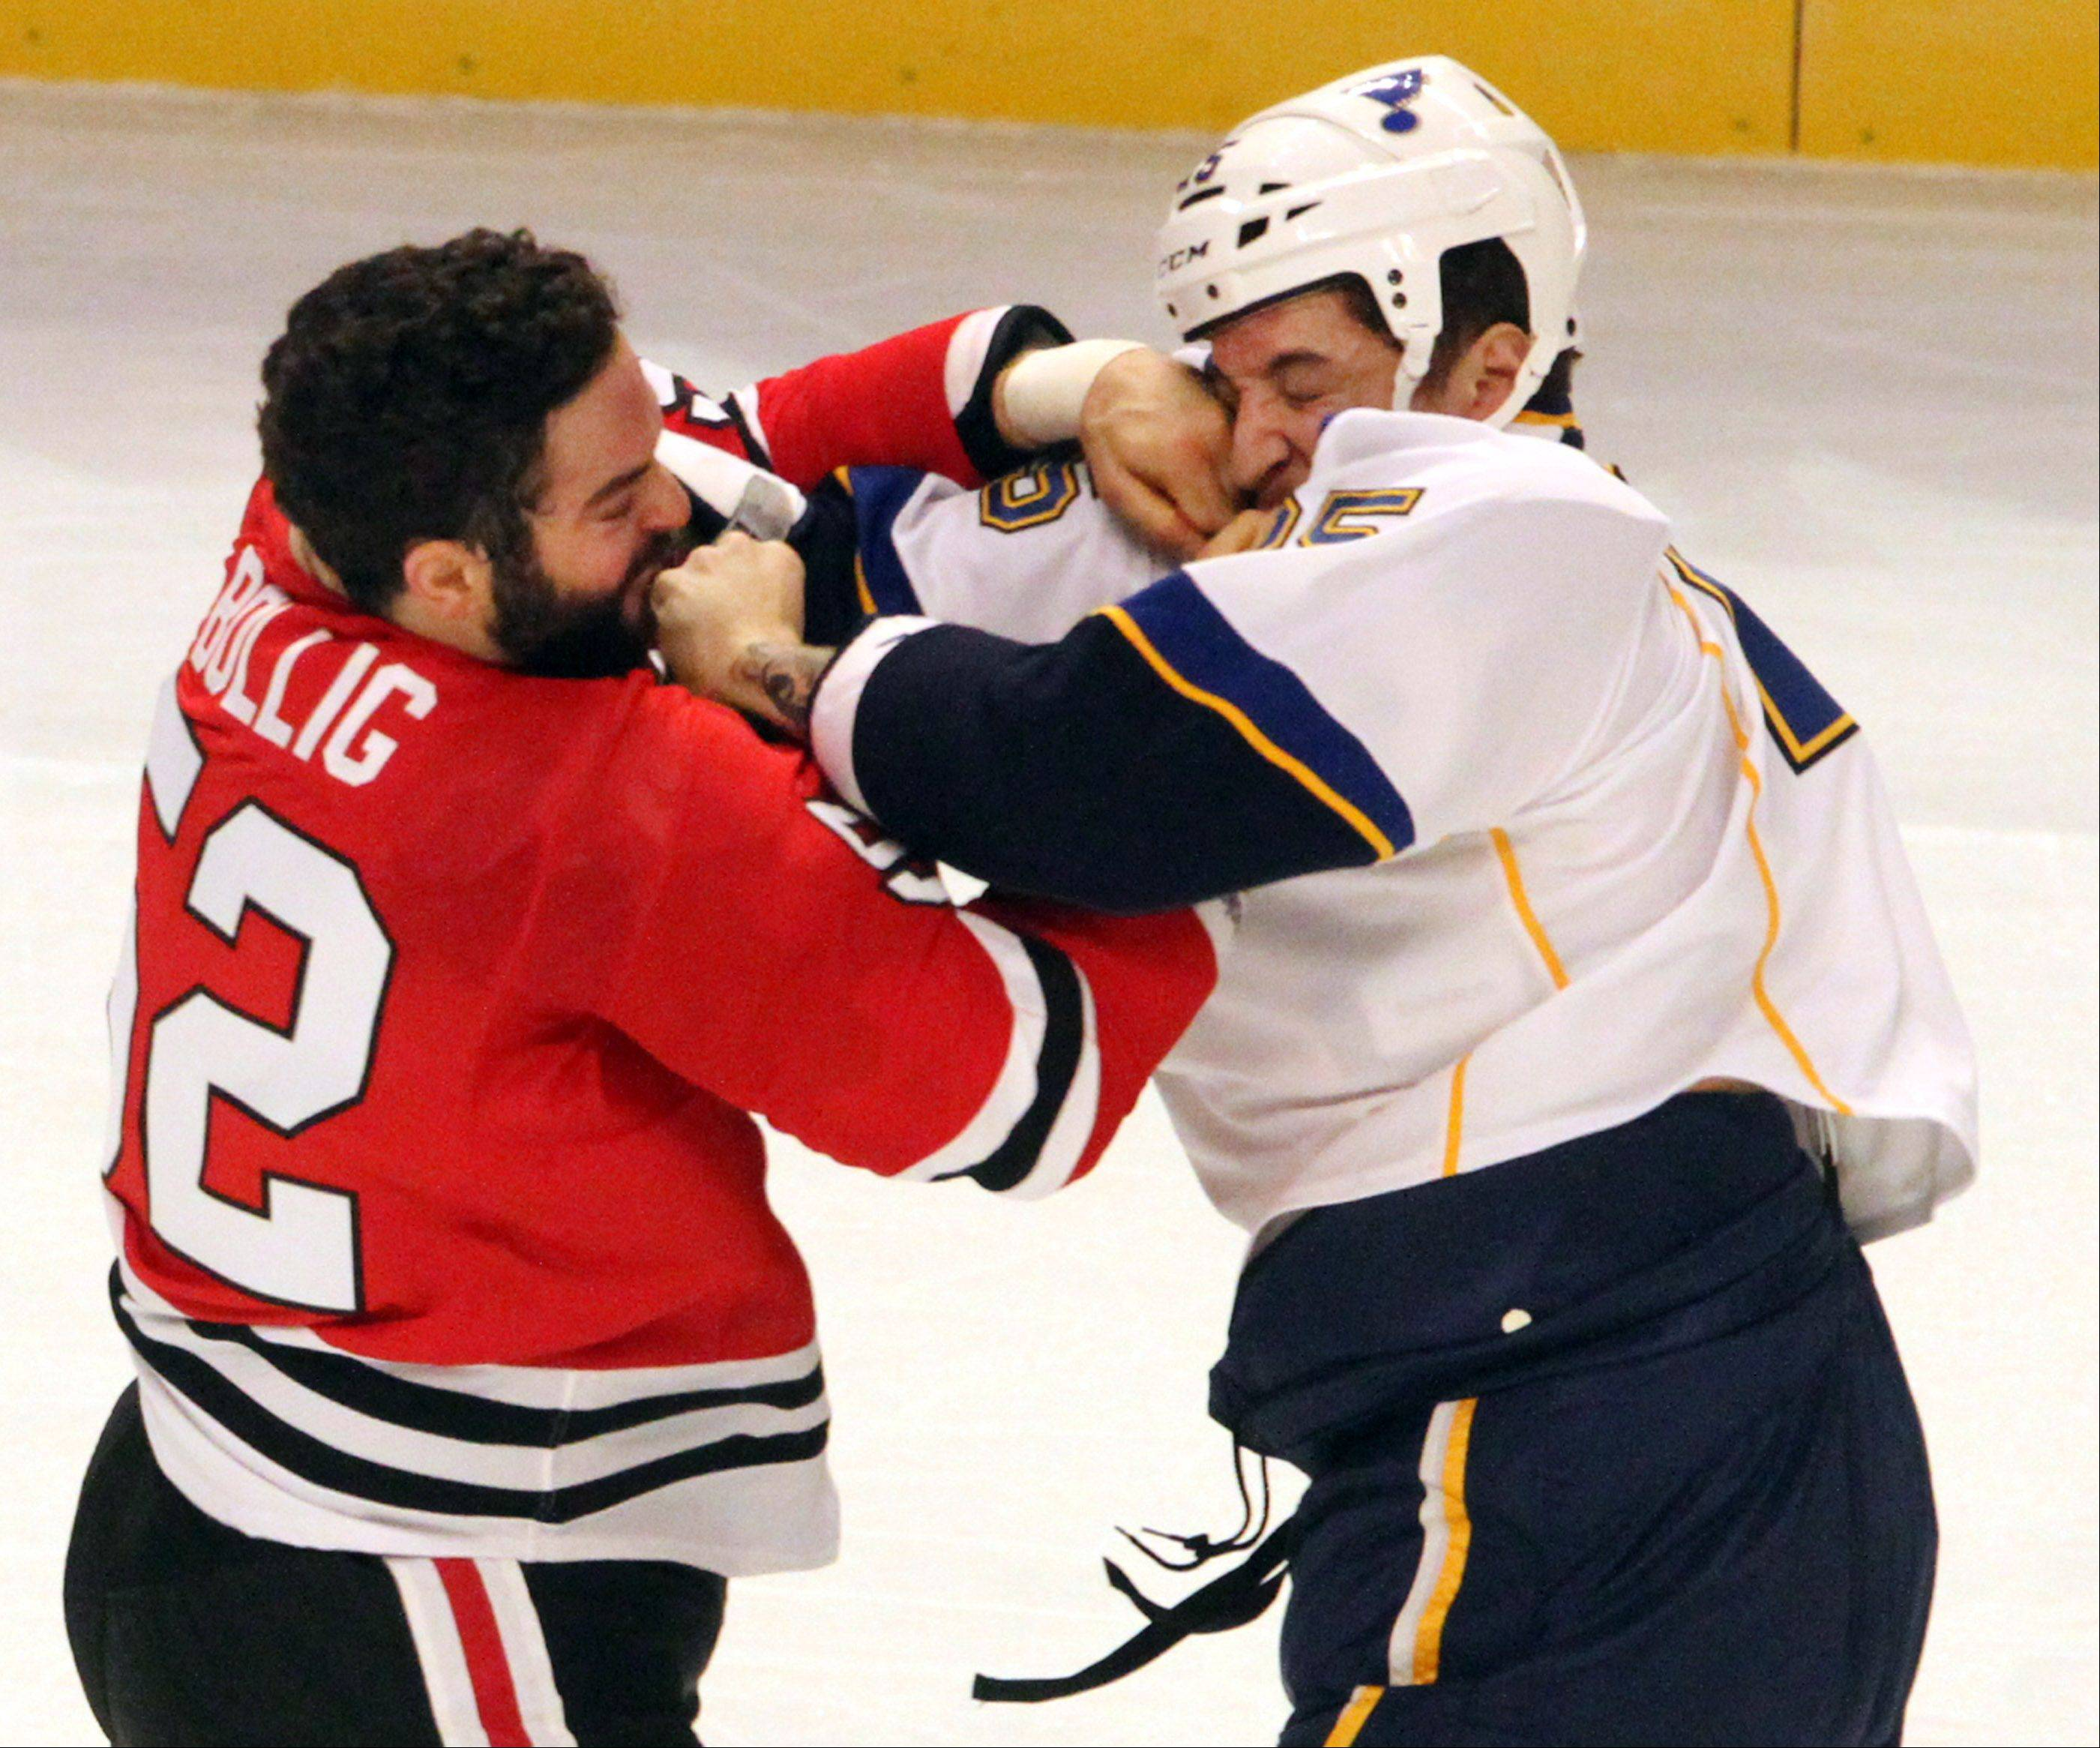 Brandon Bollig plays the role for enforcer for the Hawks, but he also contributes in many other ways.